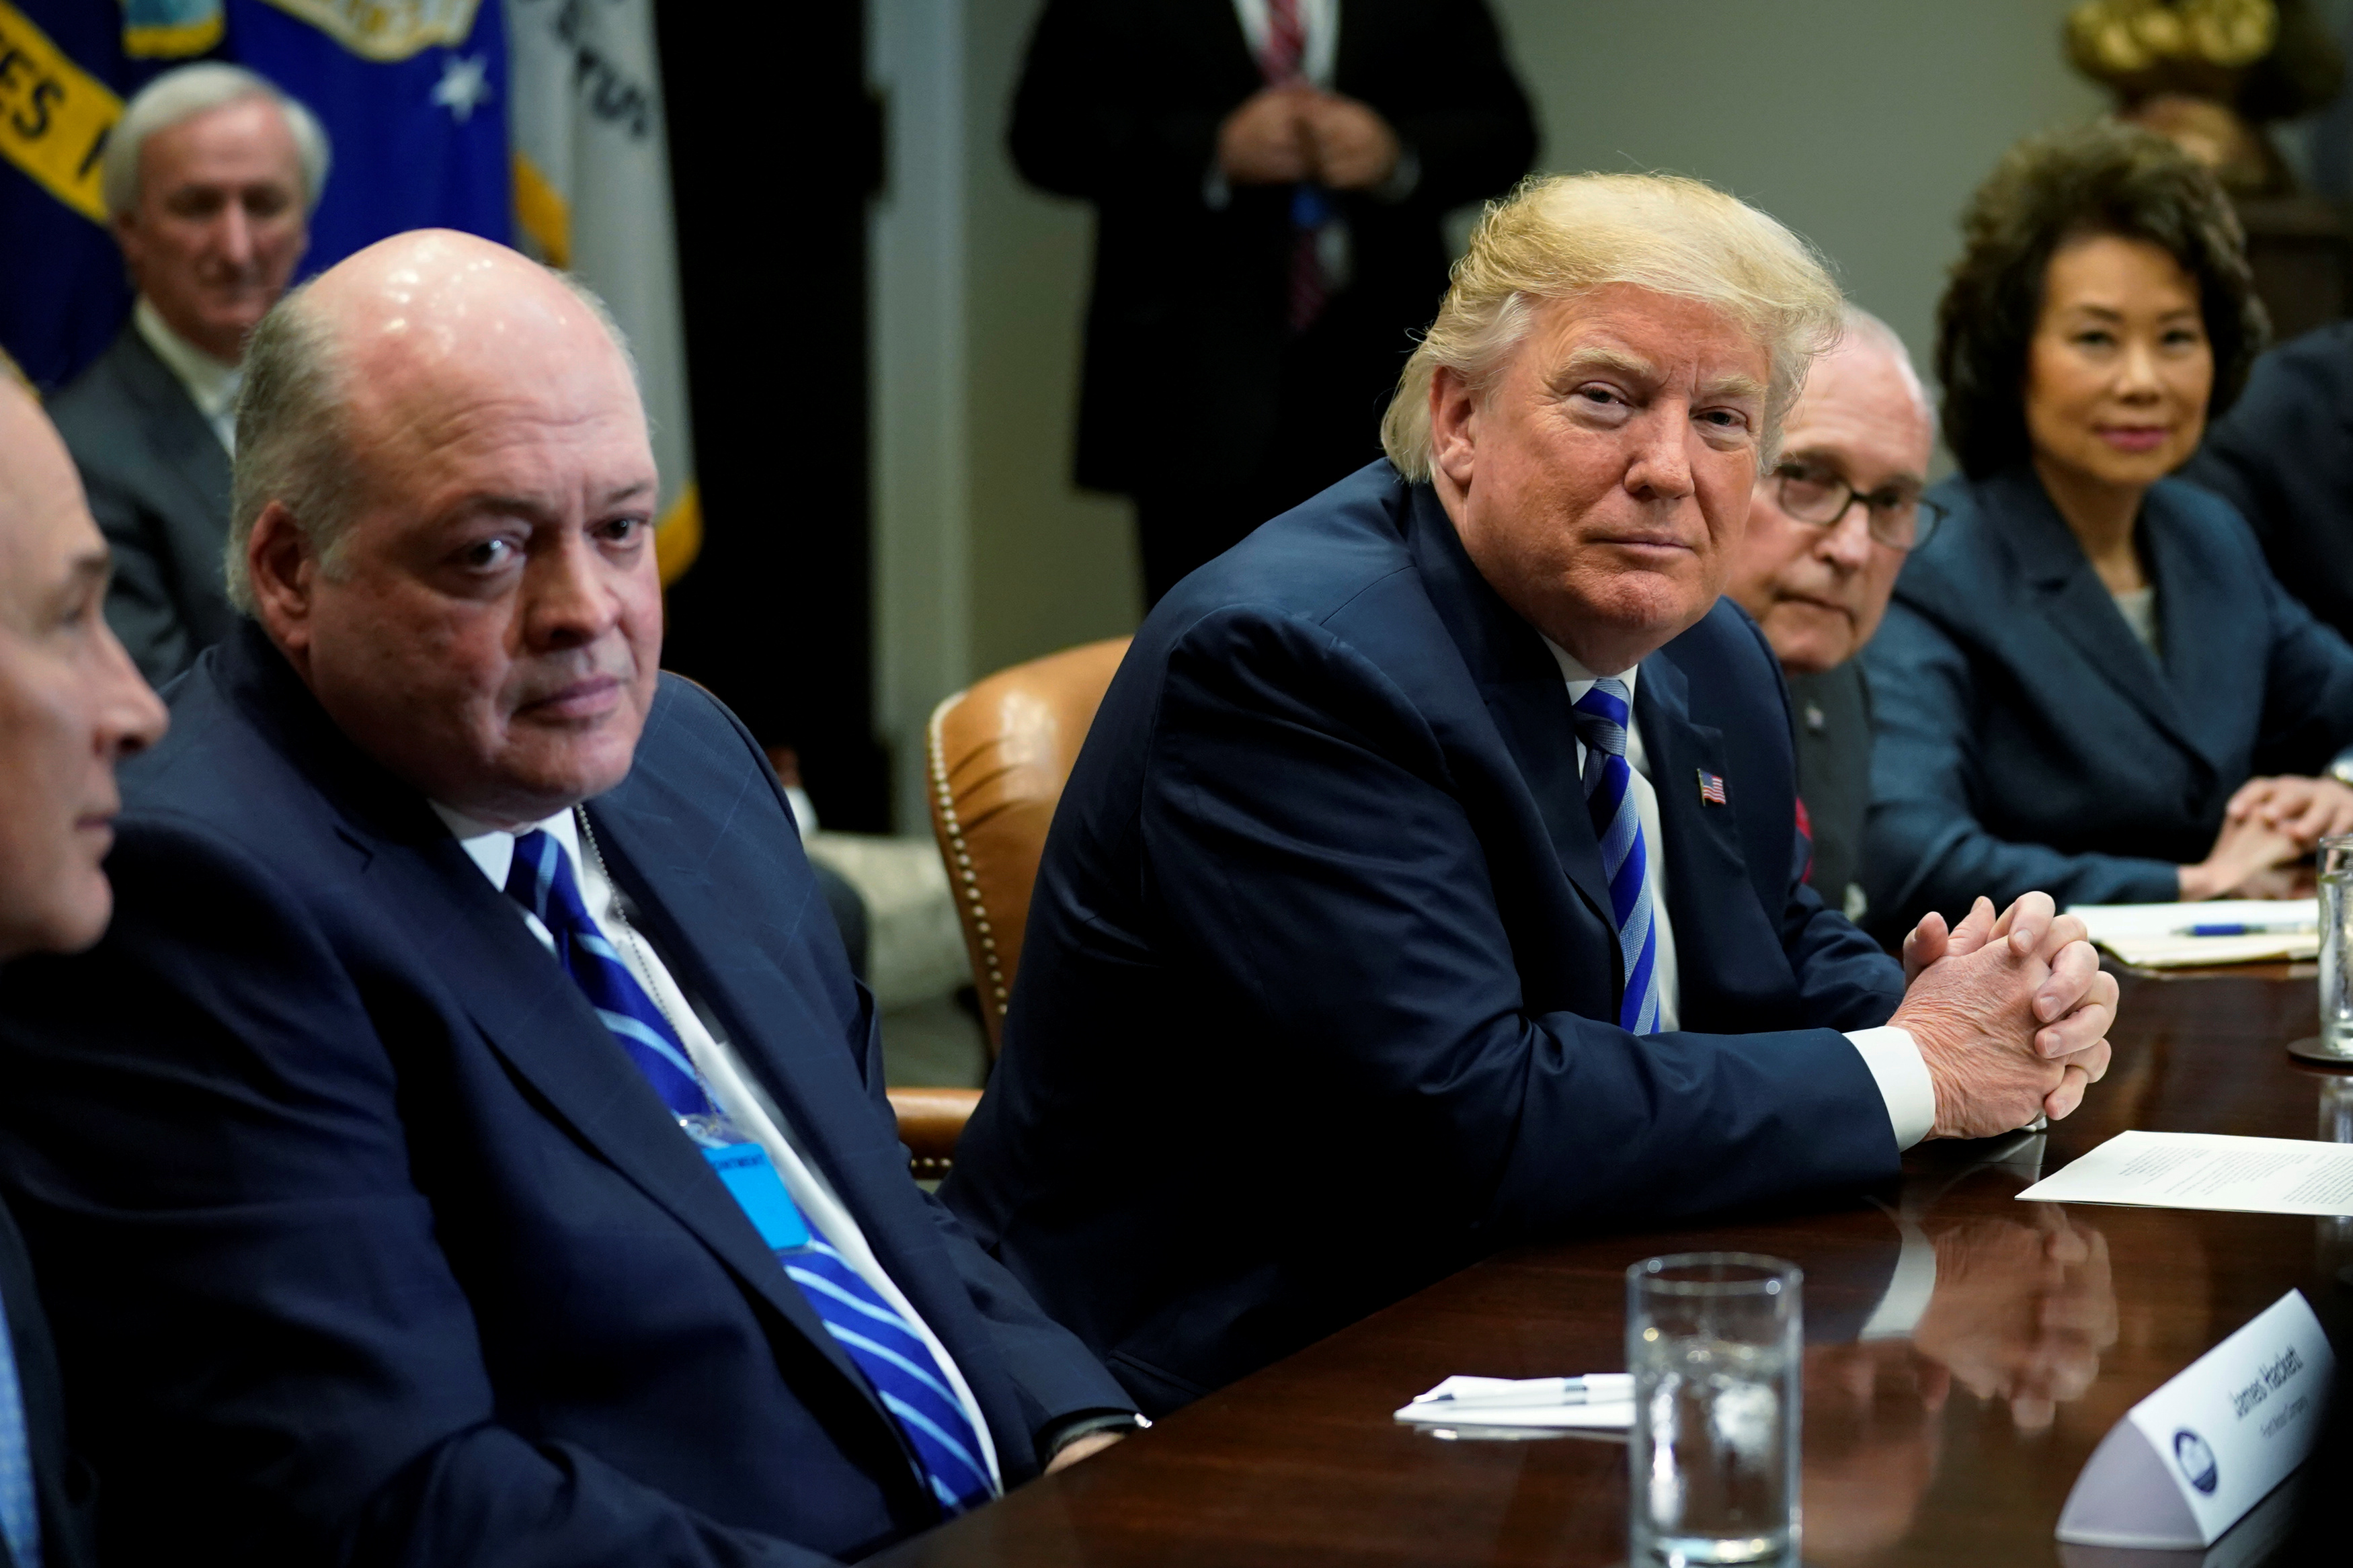 U.S. President Donald Trump, flanked by Ford CEO James Hackett, left, and White House chief economic adviser Larry Kudlow, 2nd right, and Transportation Secretary Elaine Chao, meets with chief executives of major U.S. and foreign automakers at the Wh...